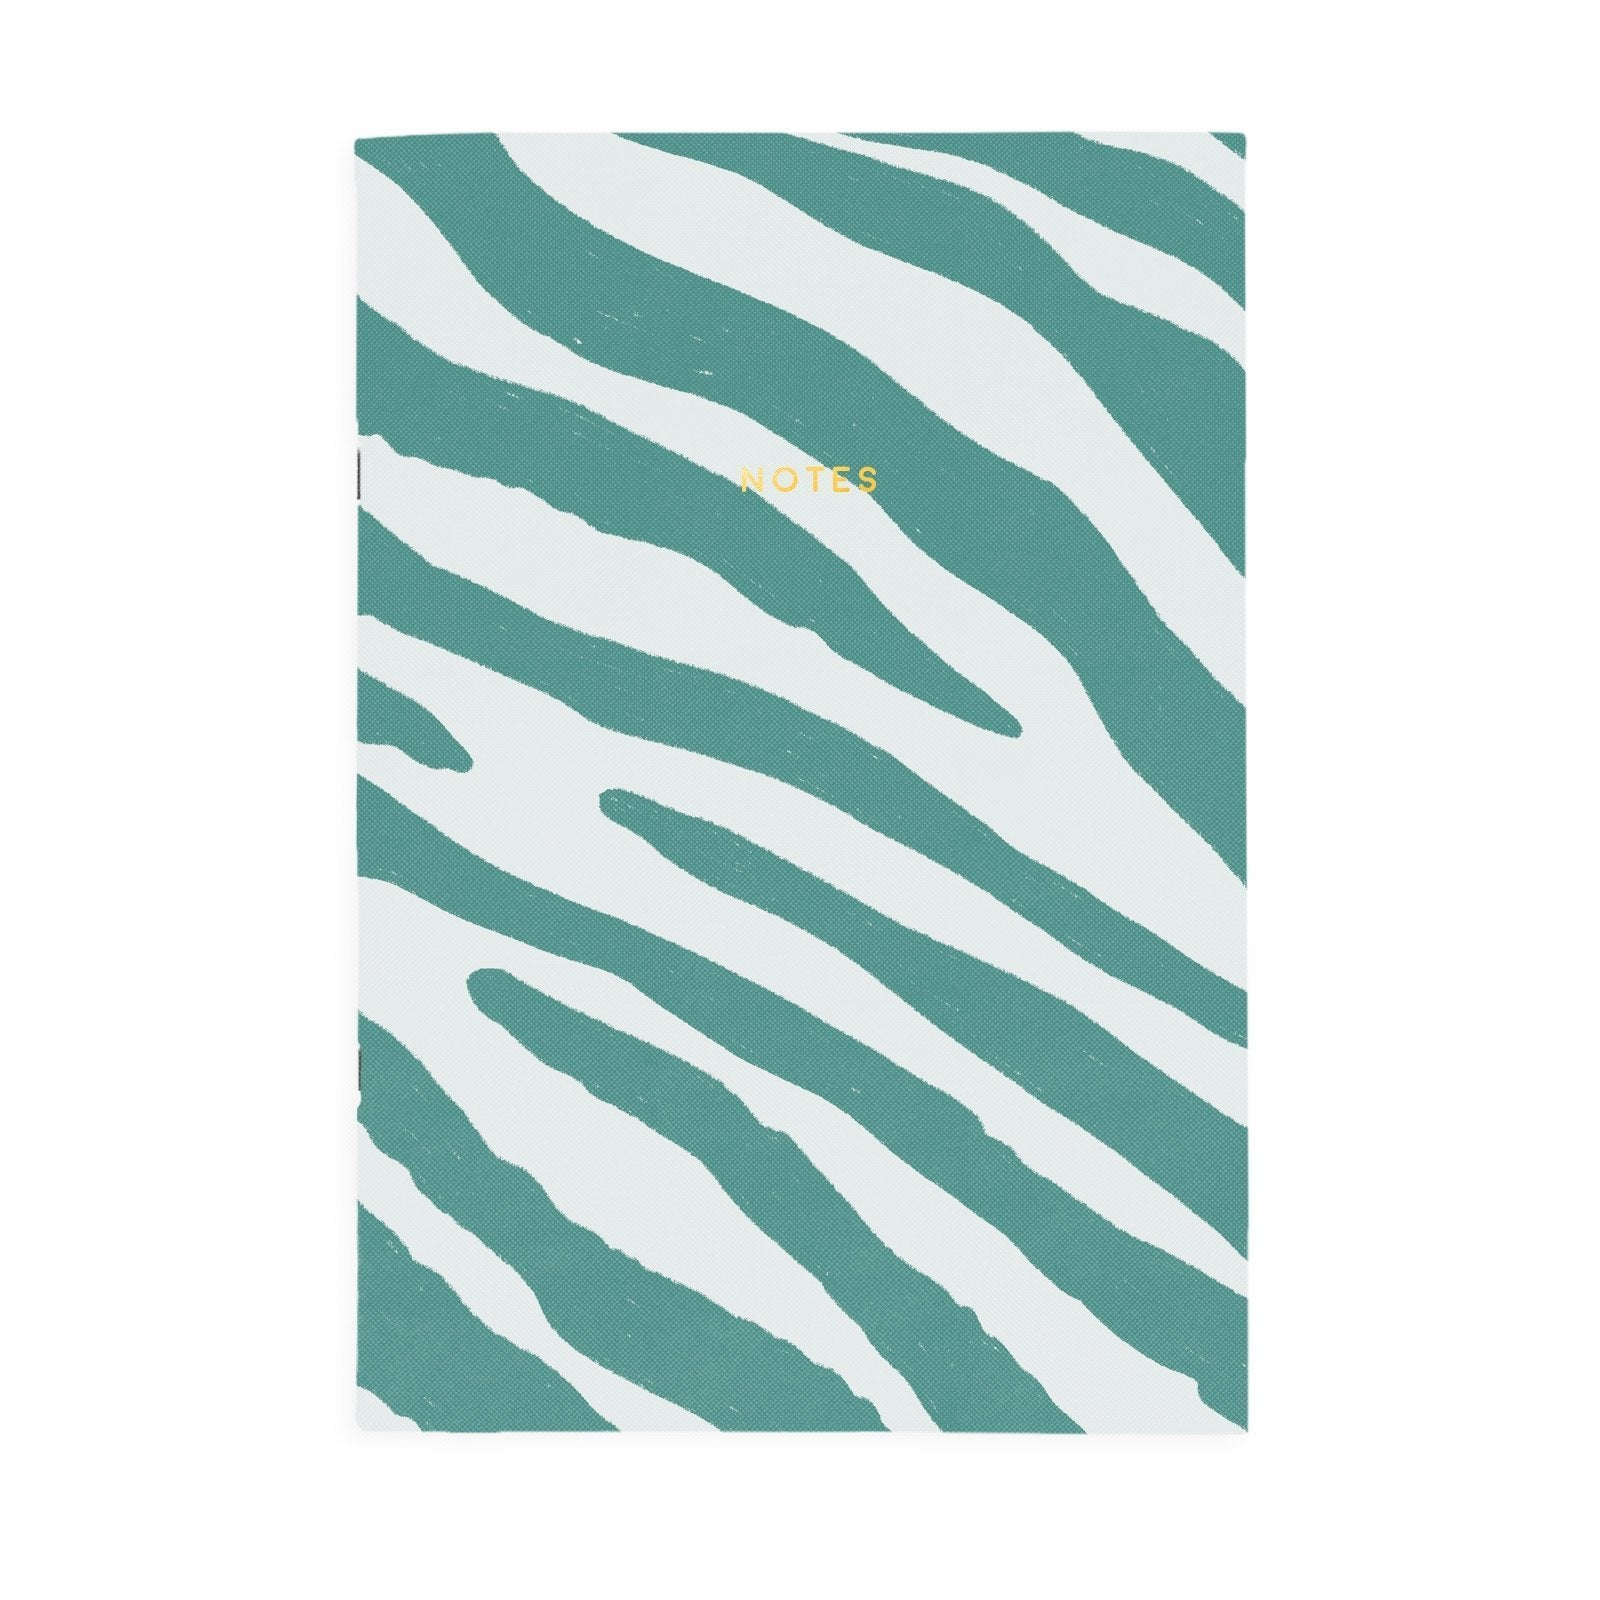 Teal Zebra Riso A4ish Notebook